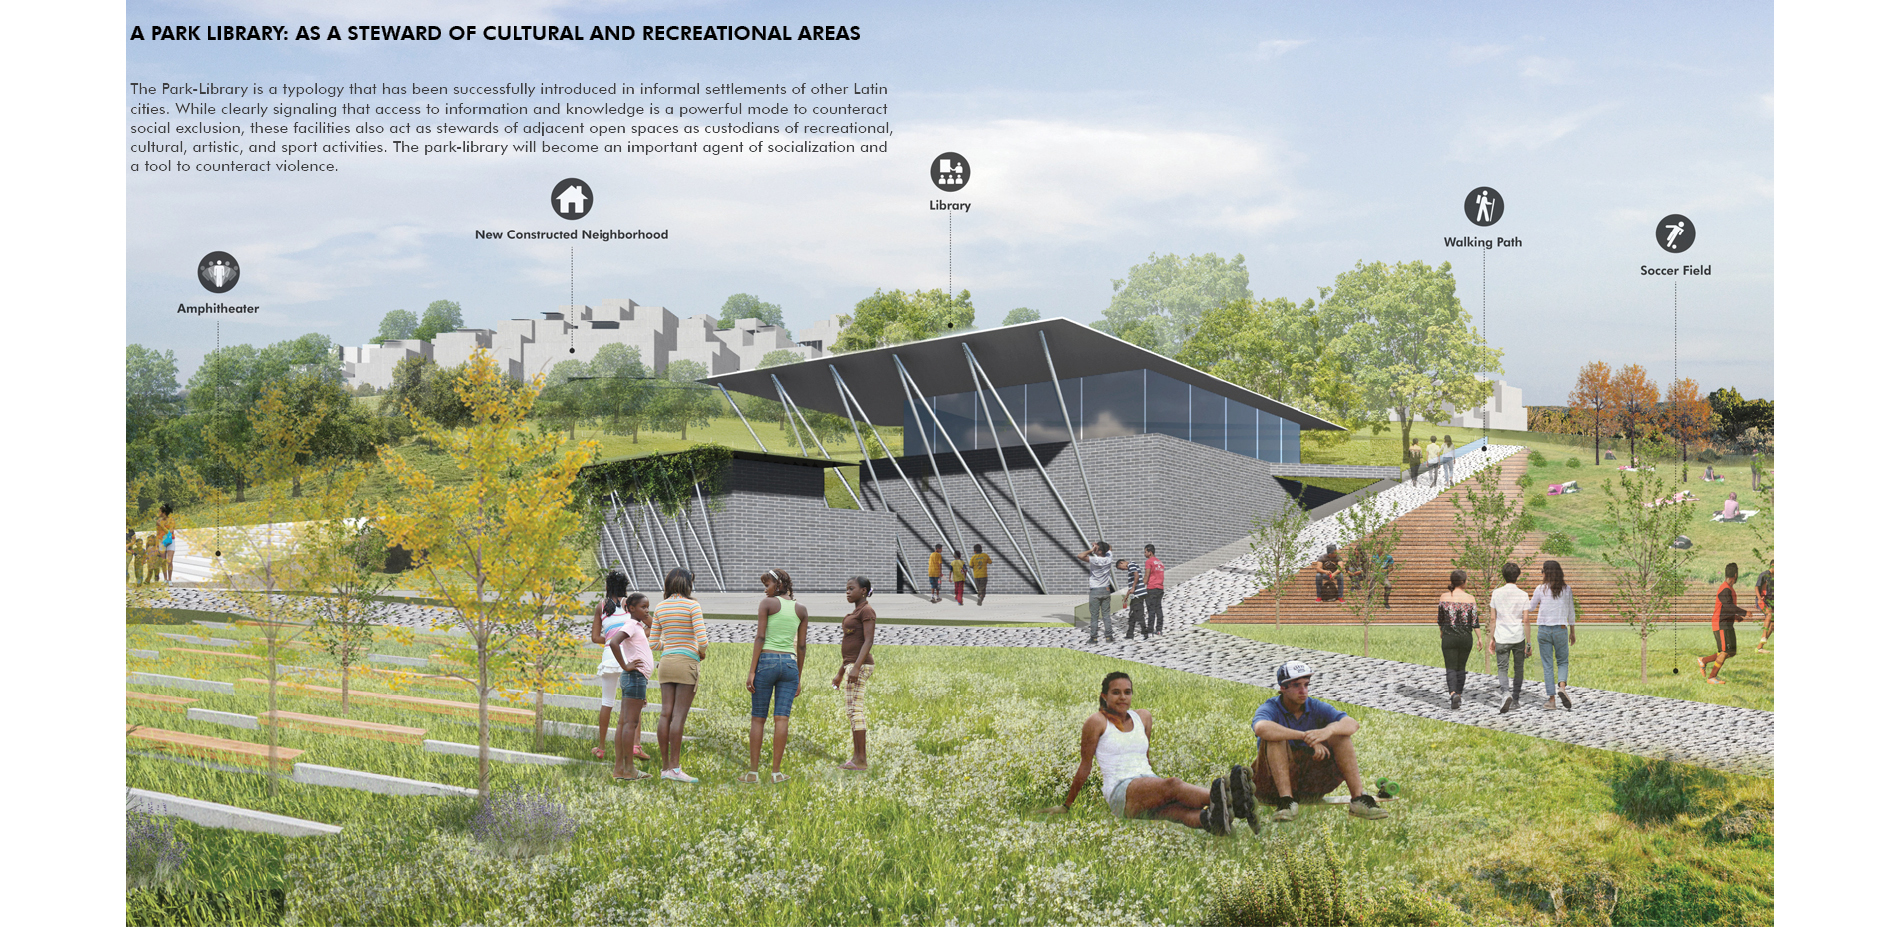 A Park Library: As a Steward of Cultural and Recreational Areas